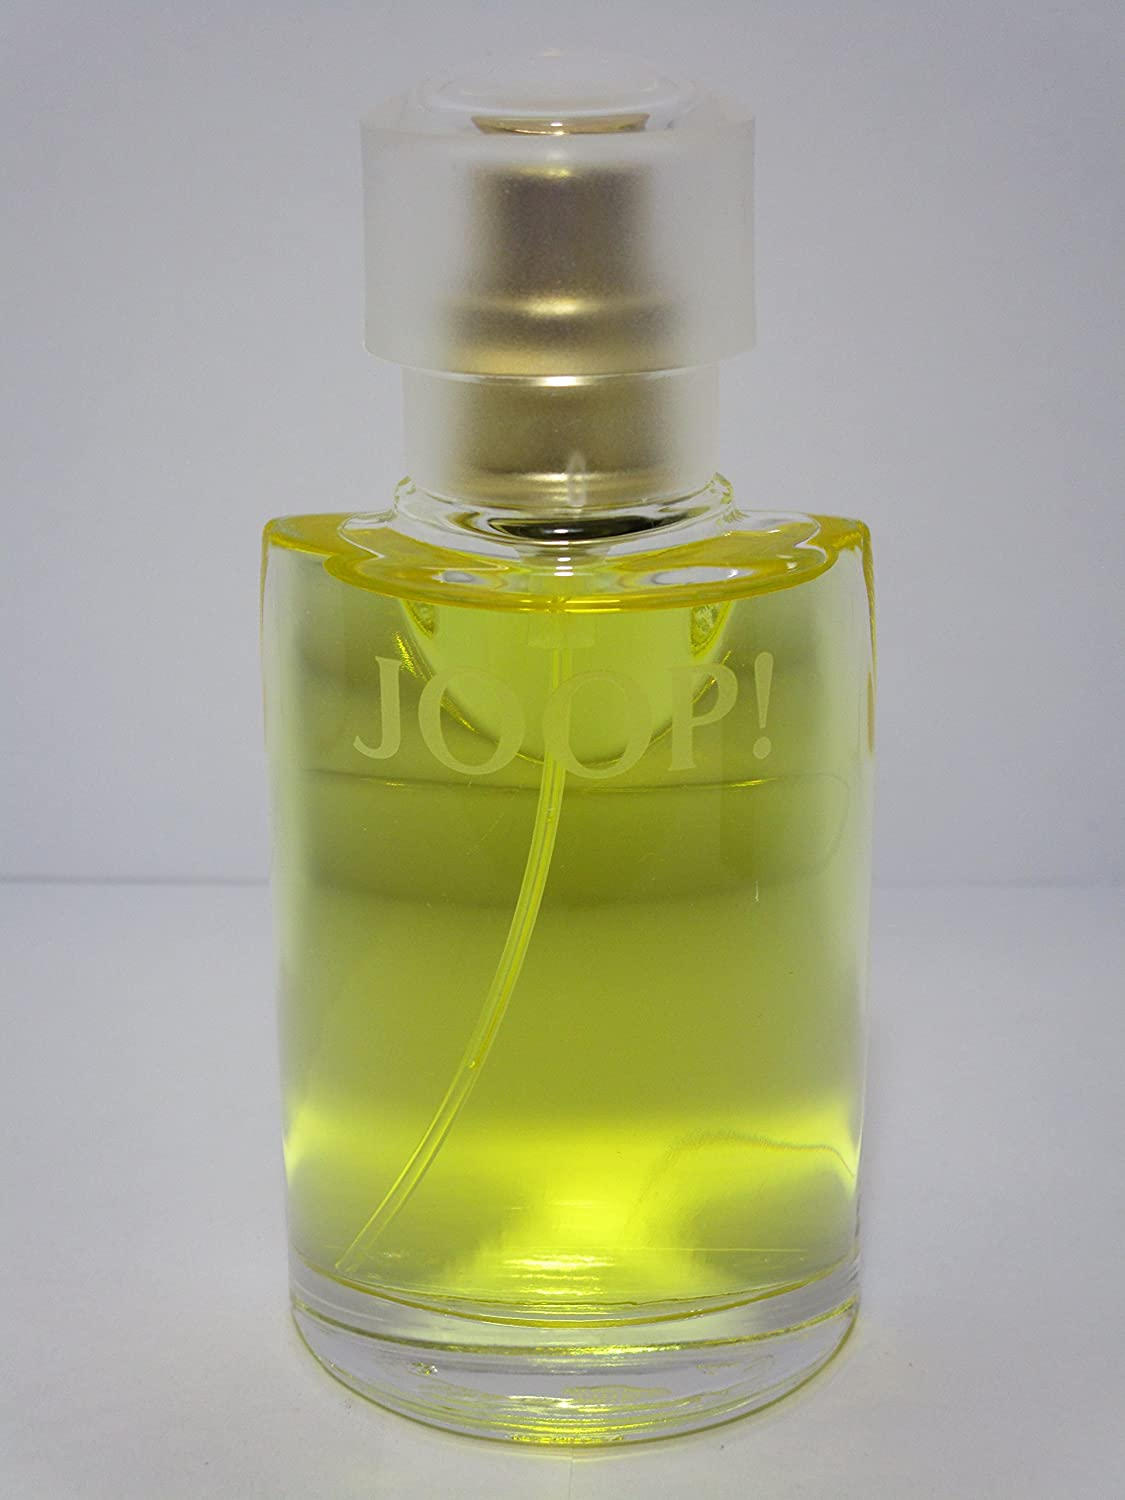 Joop Femme by Joop for Women 1.7 oz Eau de Toilette Spray